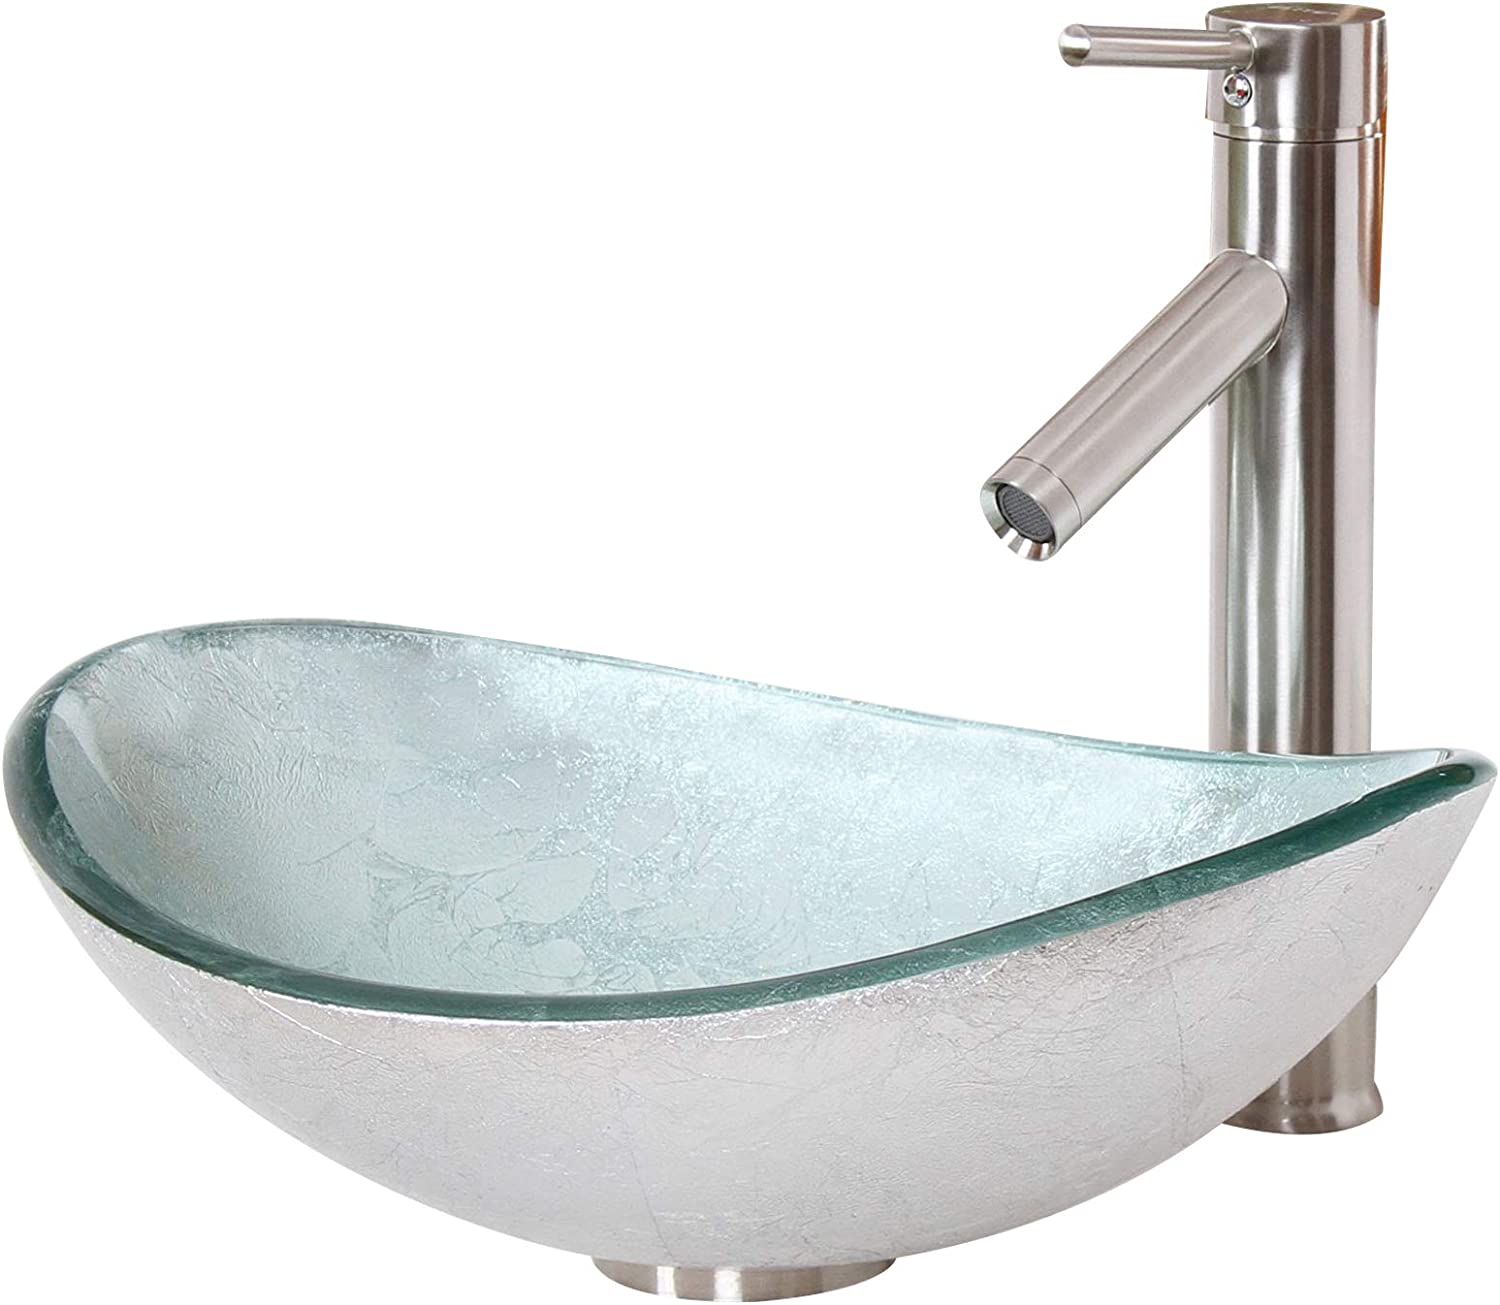 ELITE Unique Oval Silver Tempered Glass Bathroom Vessel Sink Brushed Nickel Faucet Combo